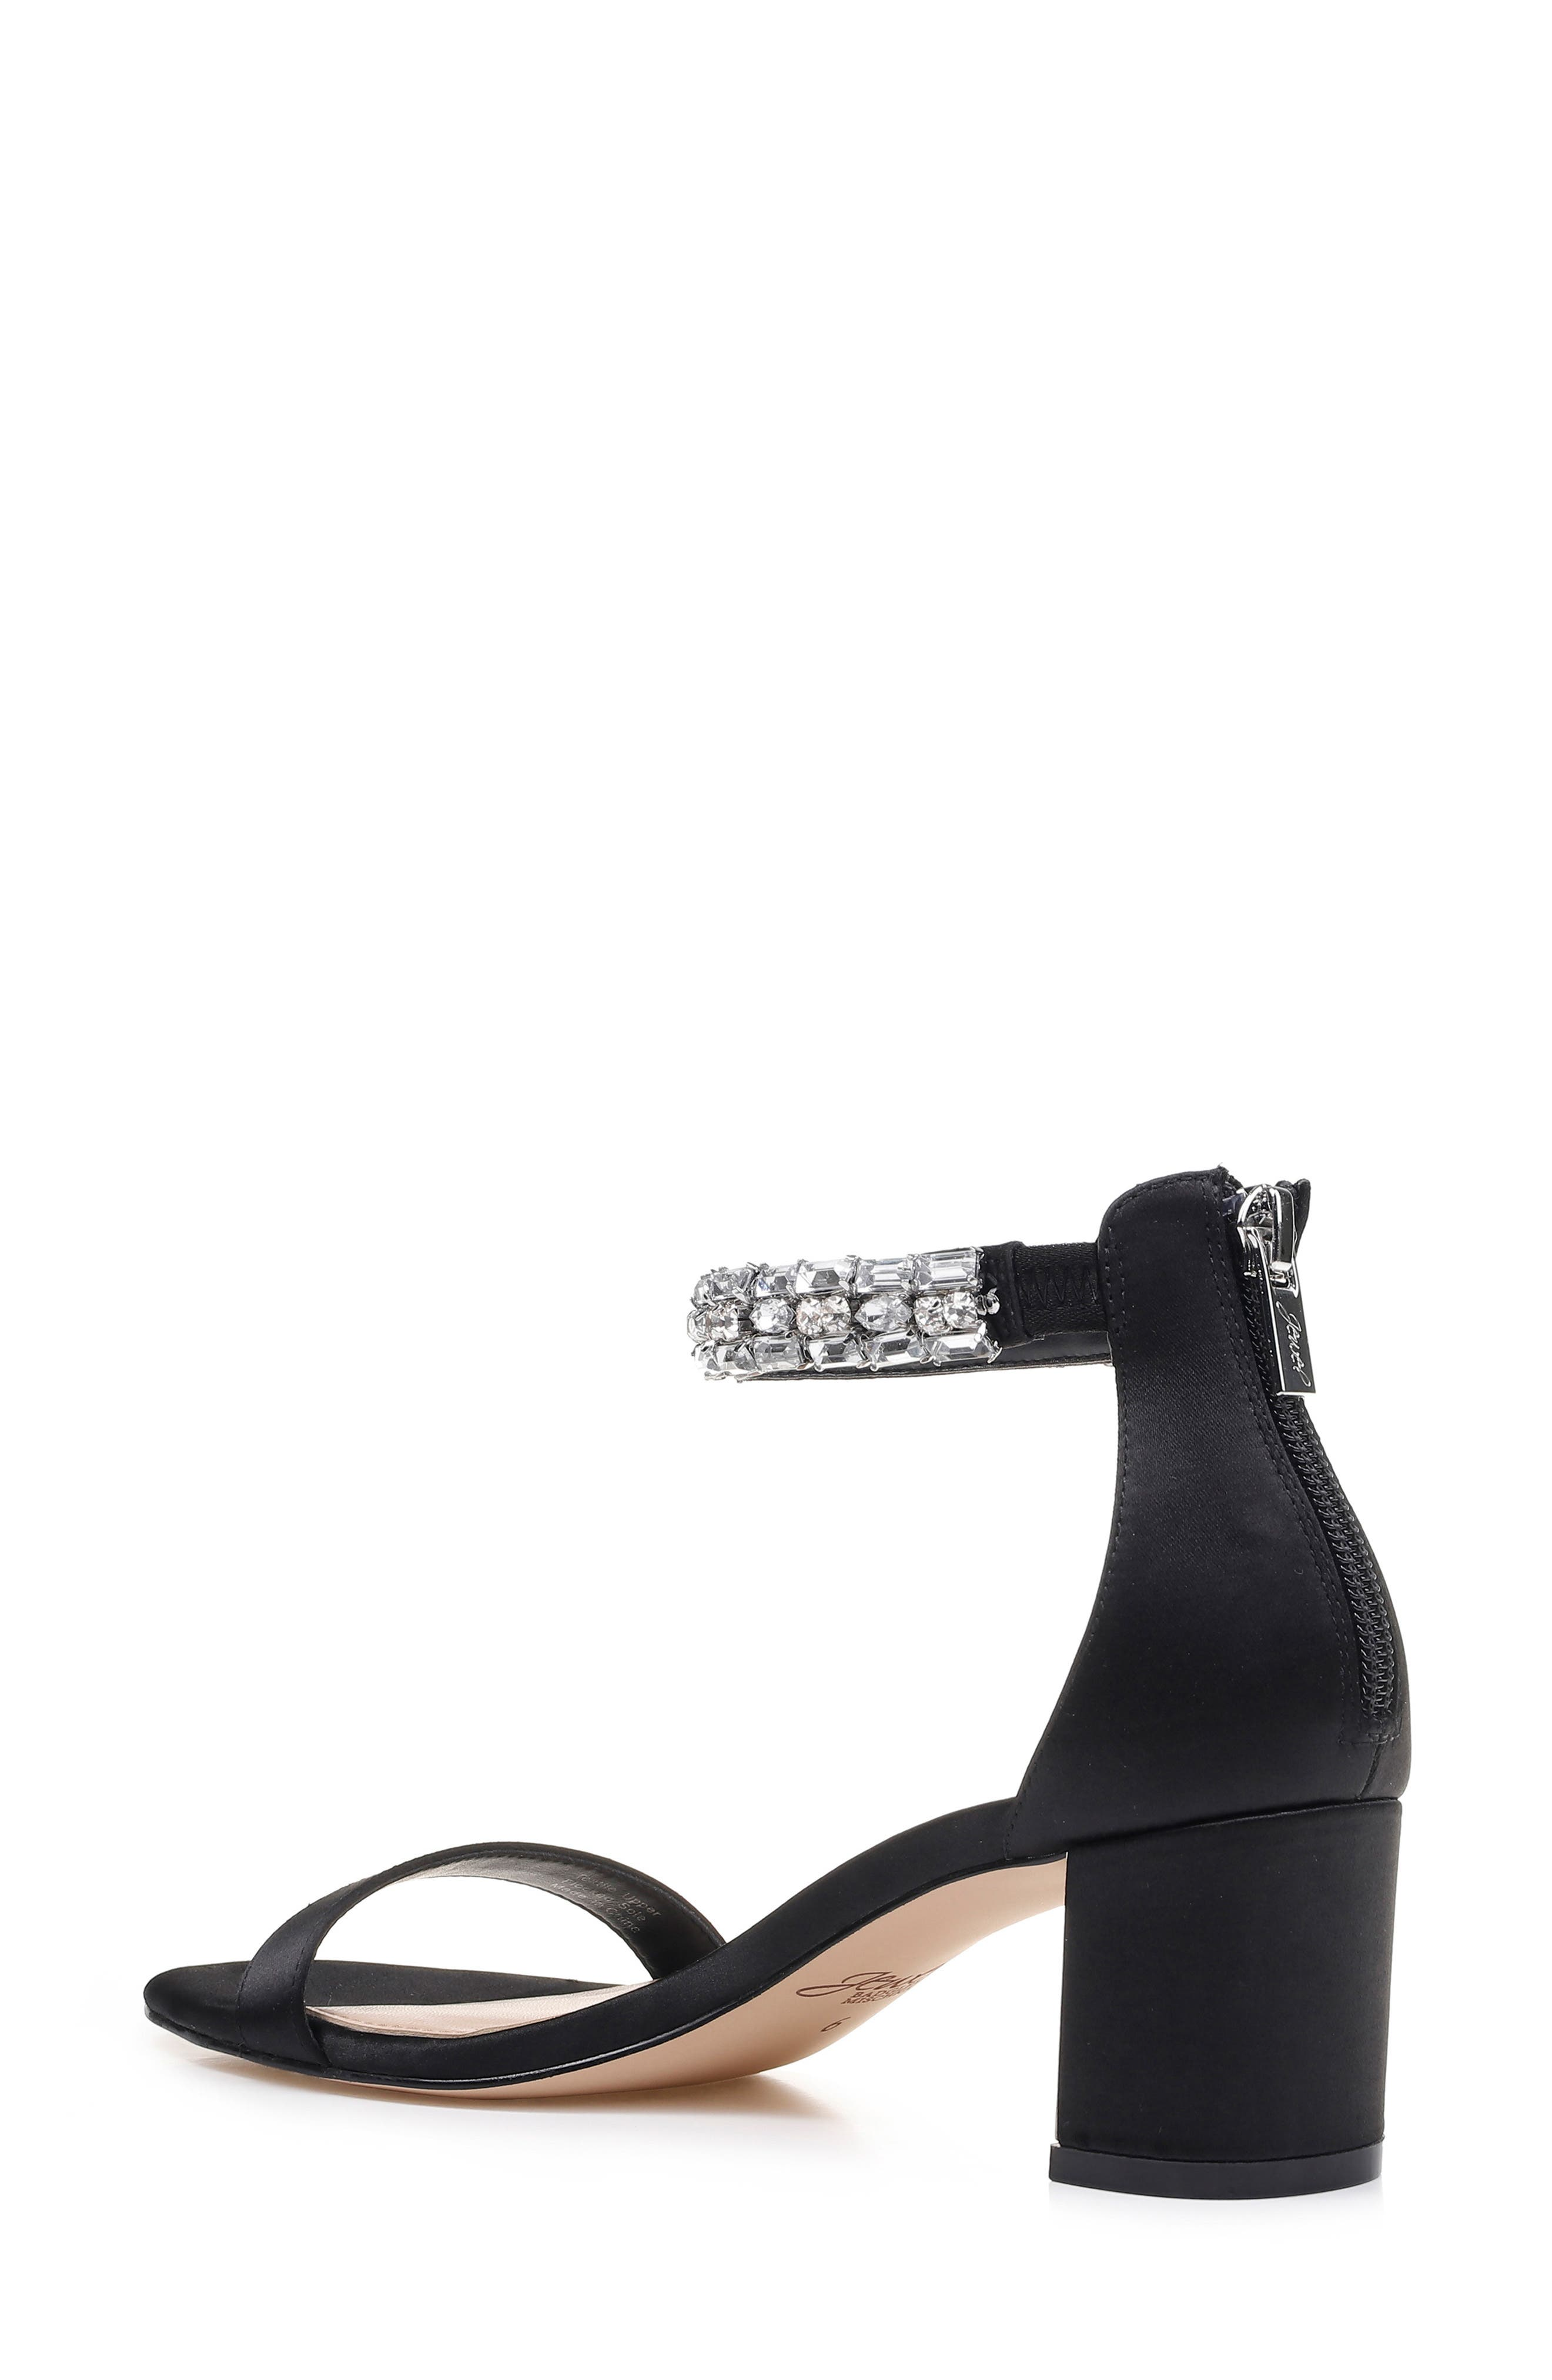 JEWEL BADGLEY MISCHKA, Katerina Ankle Strap Sandal, Alternate thumbnail 2, color, BLACK CRYSTAL SATIN